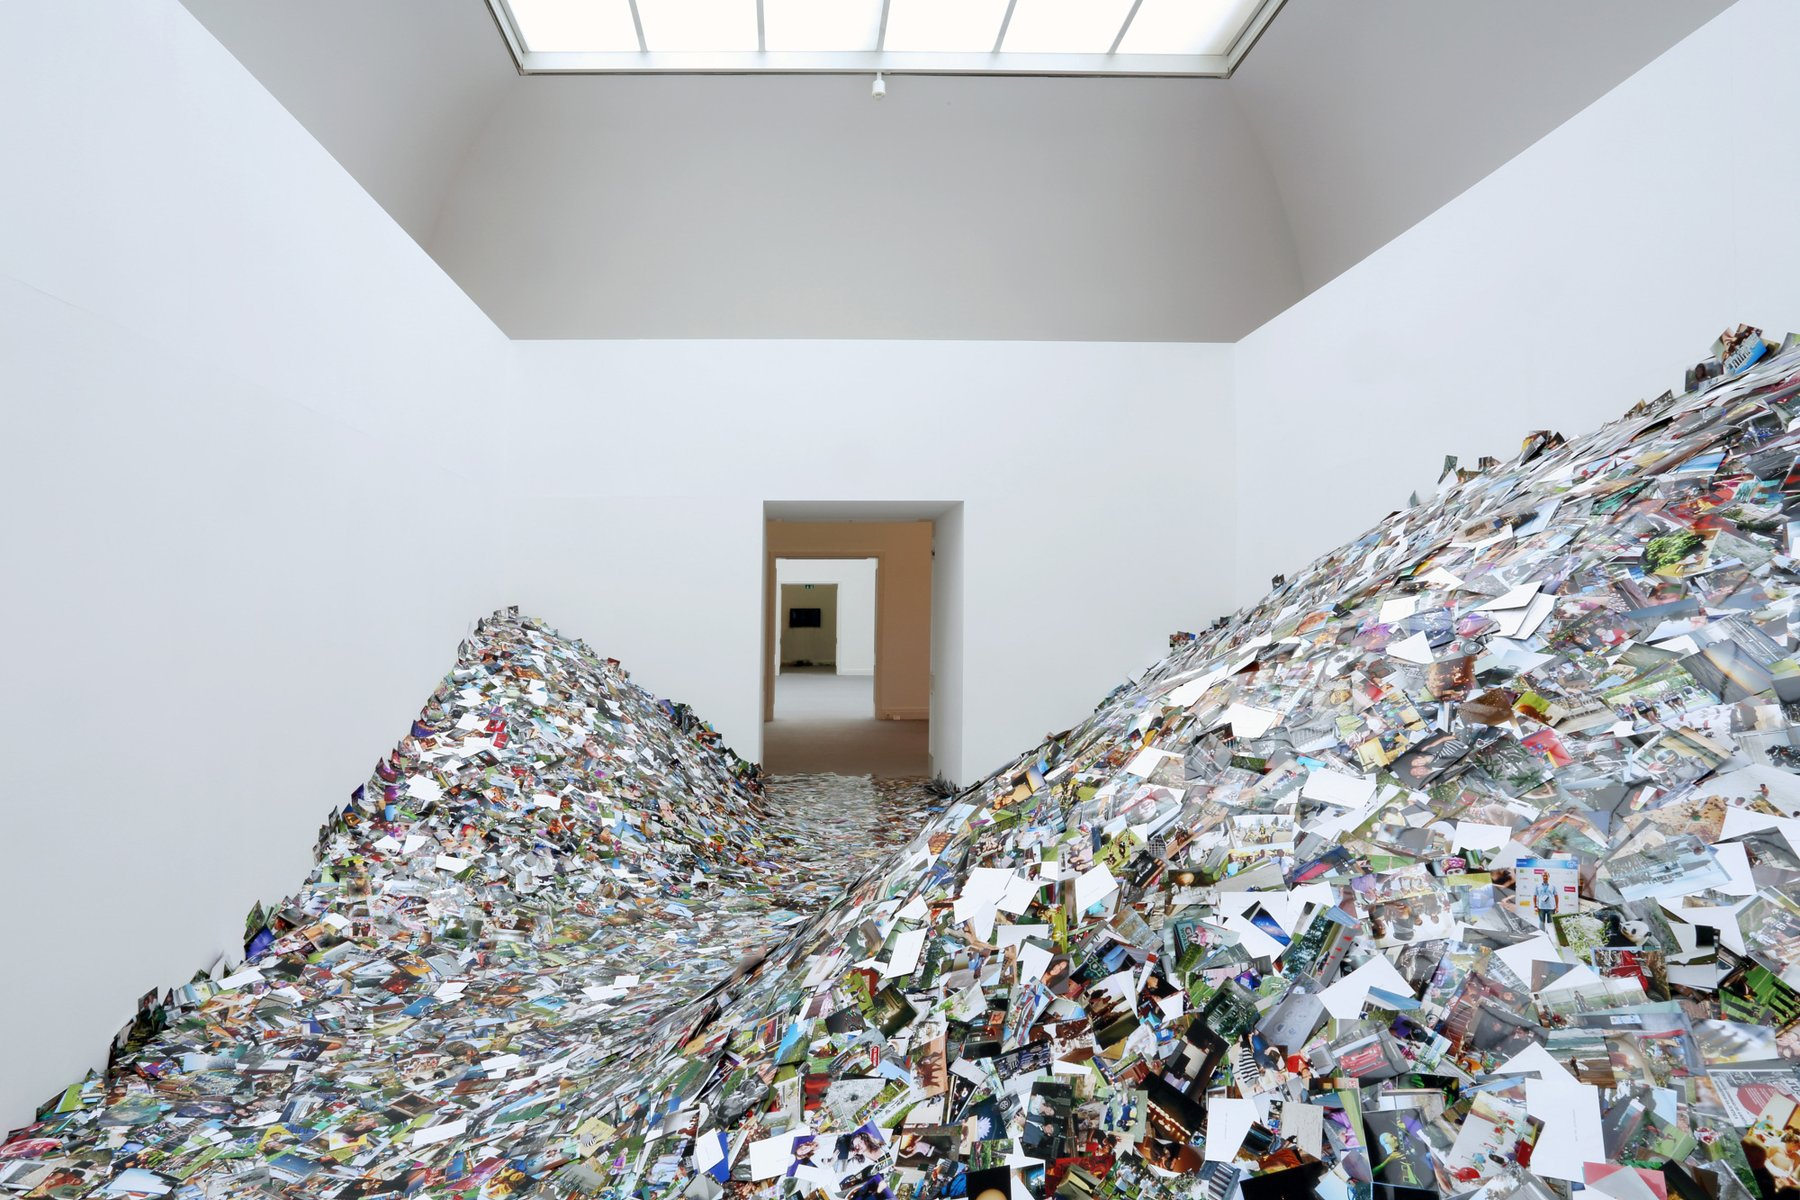 a room filled with photographs piled high